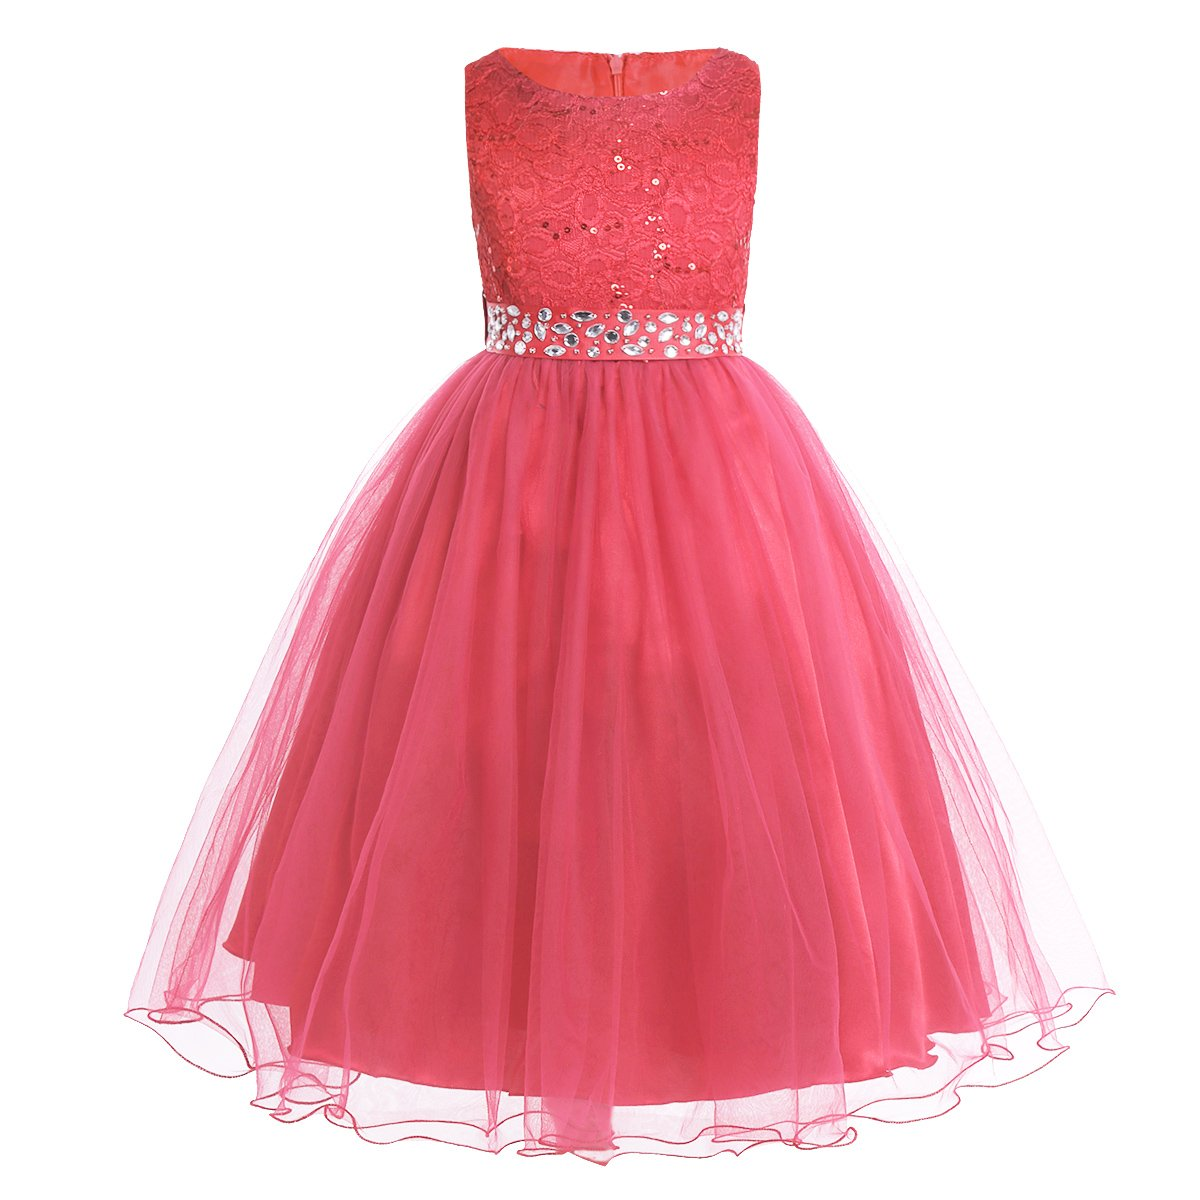 CHICTRY Sequins Lace Bodice Mesh Flower Girl Dress Summer Wedding Pageant Party Ball Gown Coral 12